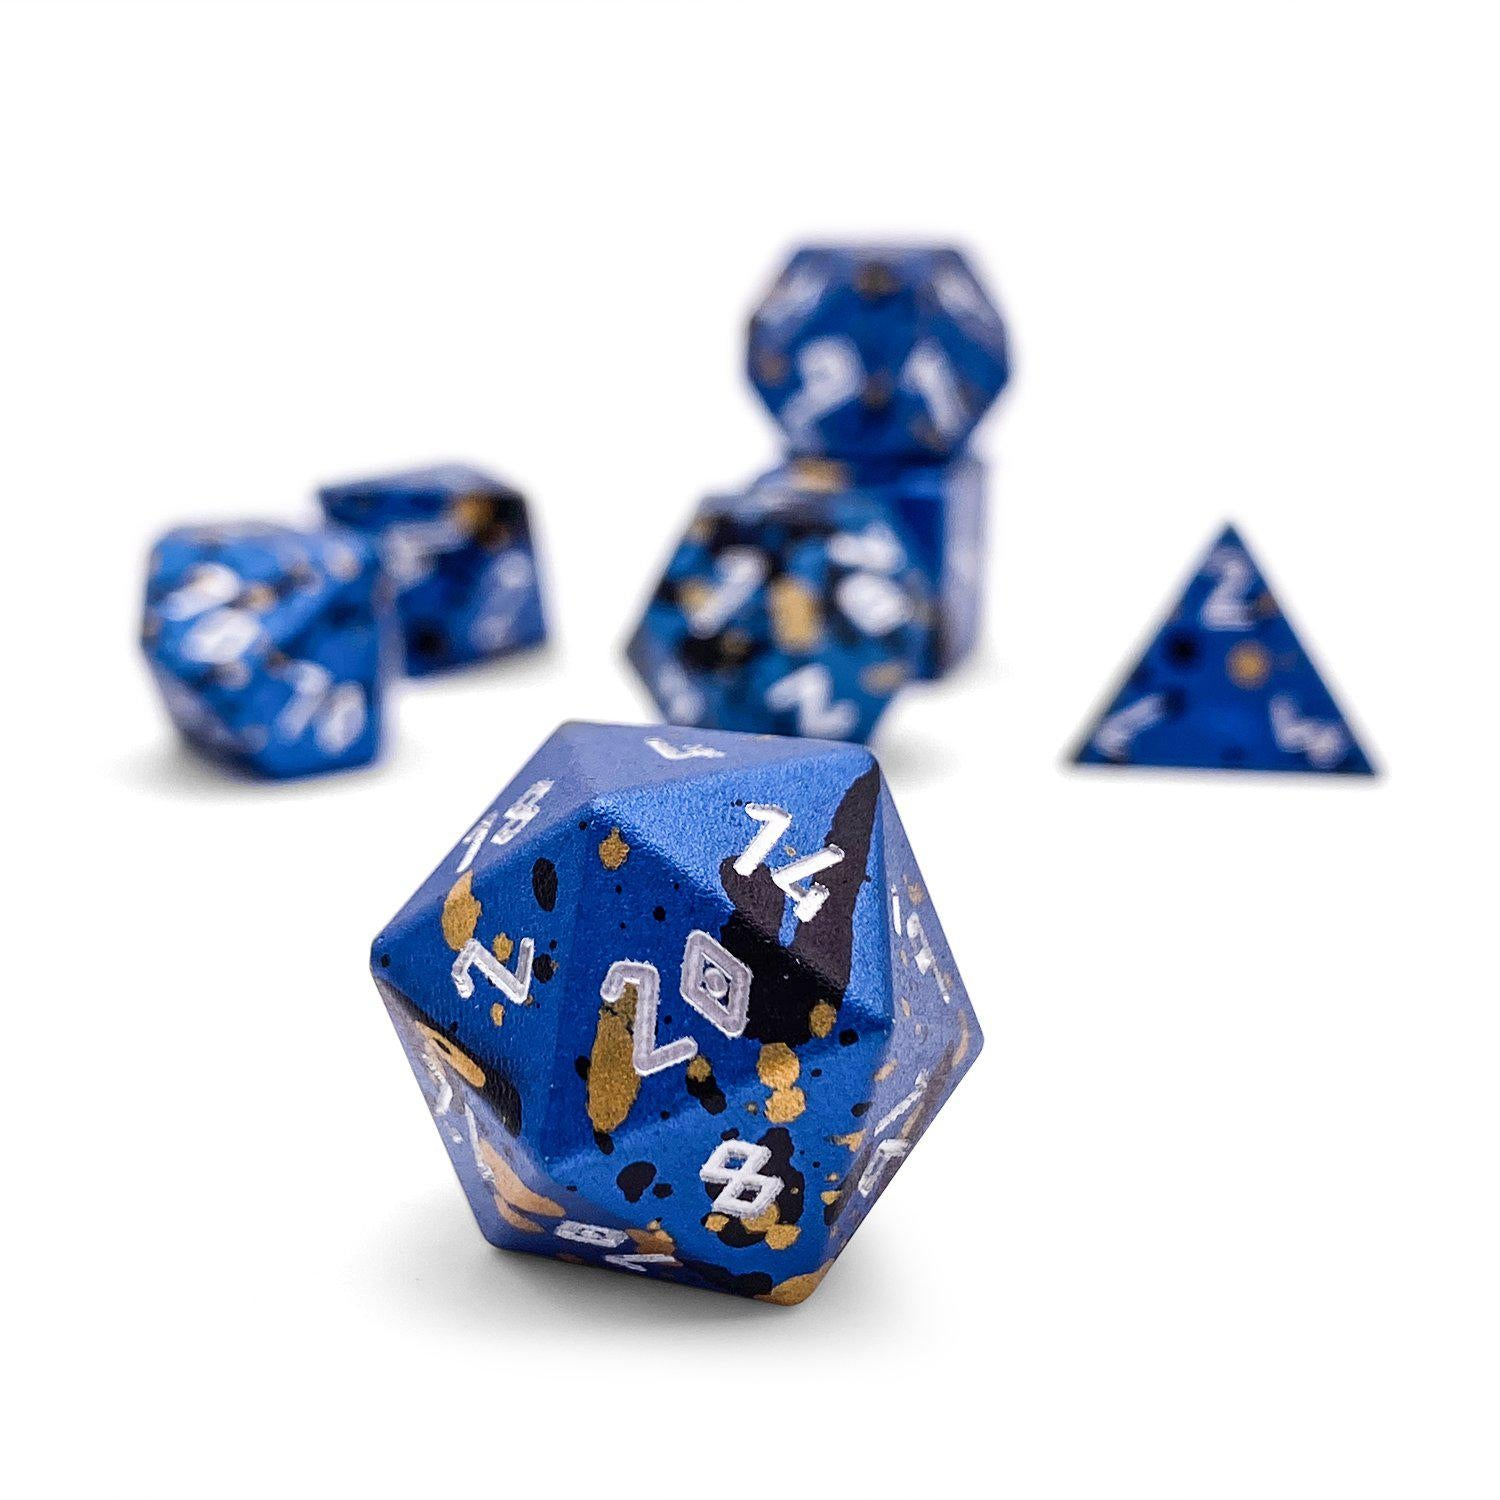 Assassin's Blade - Wondrous Dice Set of 7 RPG Dice by Norse Foundry Precision Polyhedral Dice Set